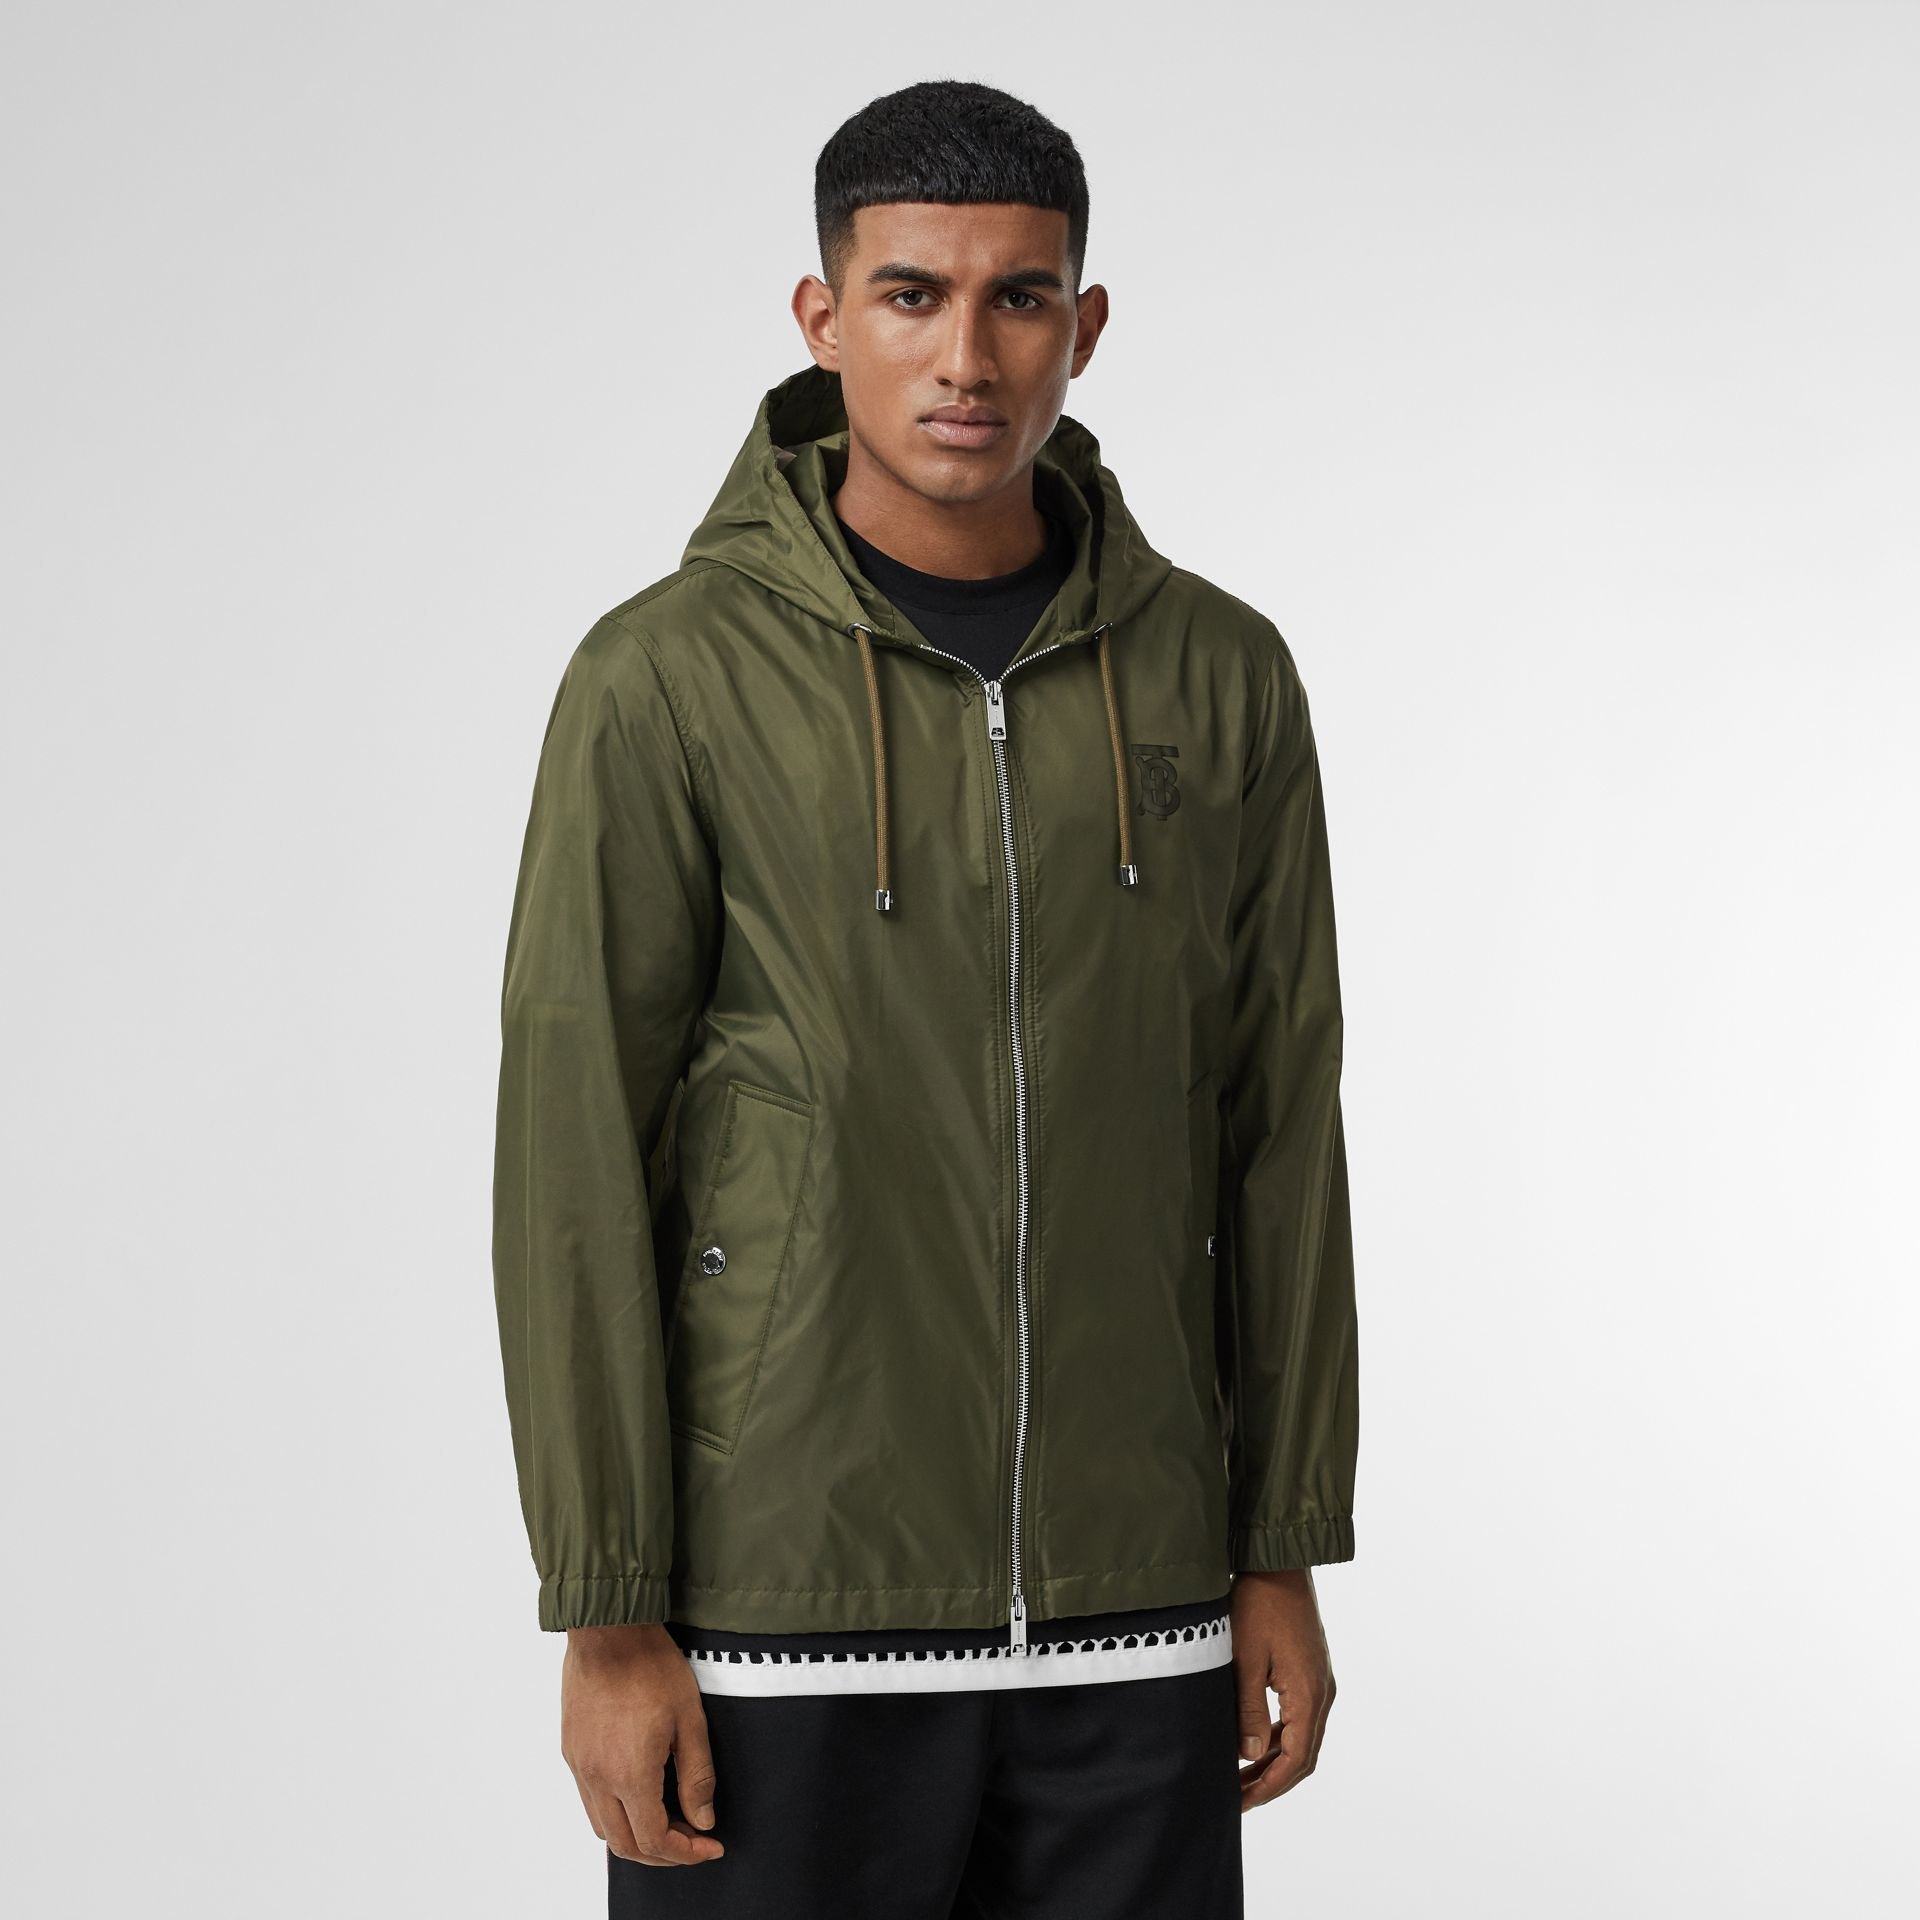 Monogram Motif Lightweight Hooded Jacket in Light Olive - Men | Burberry United Kingdom - gallery image 5